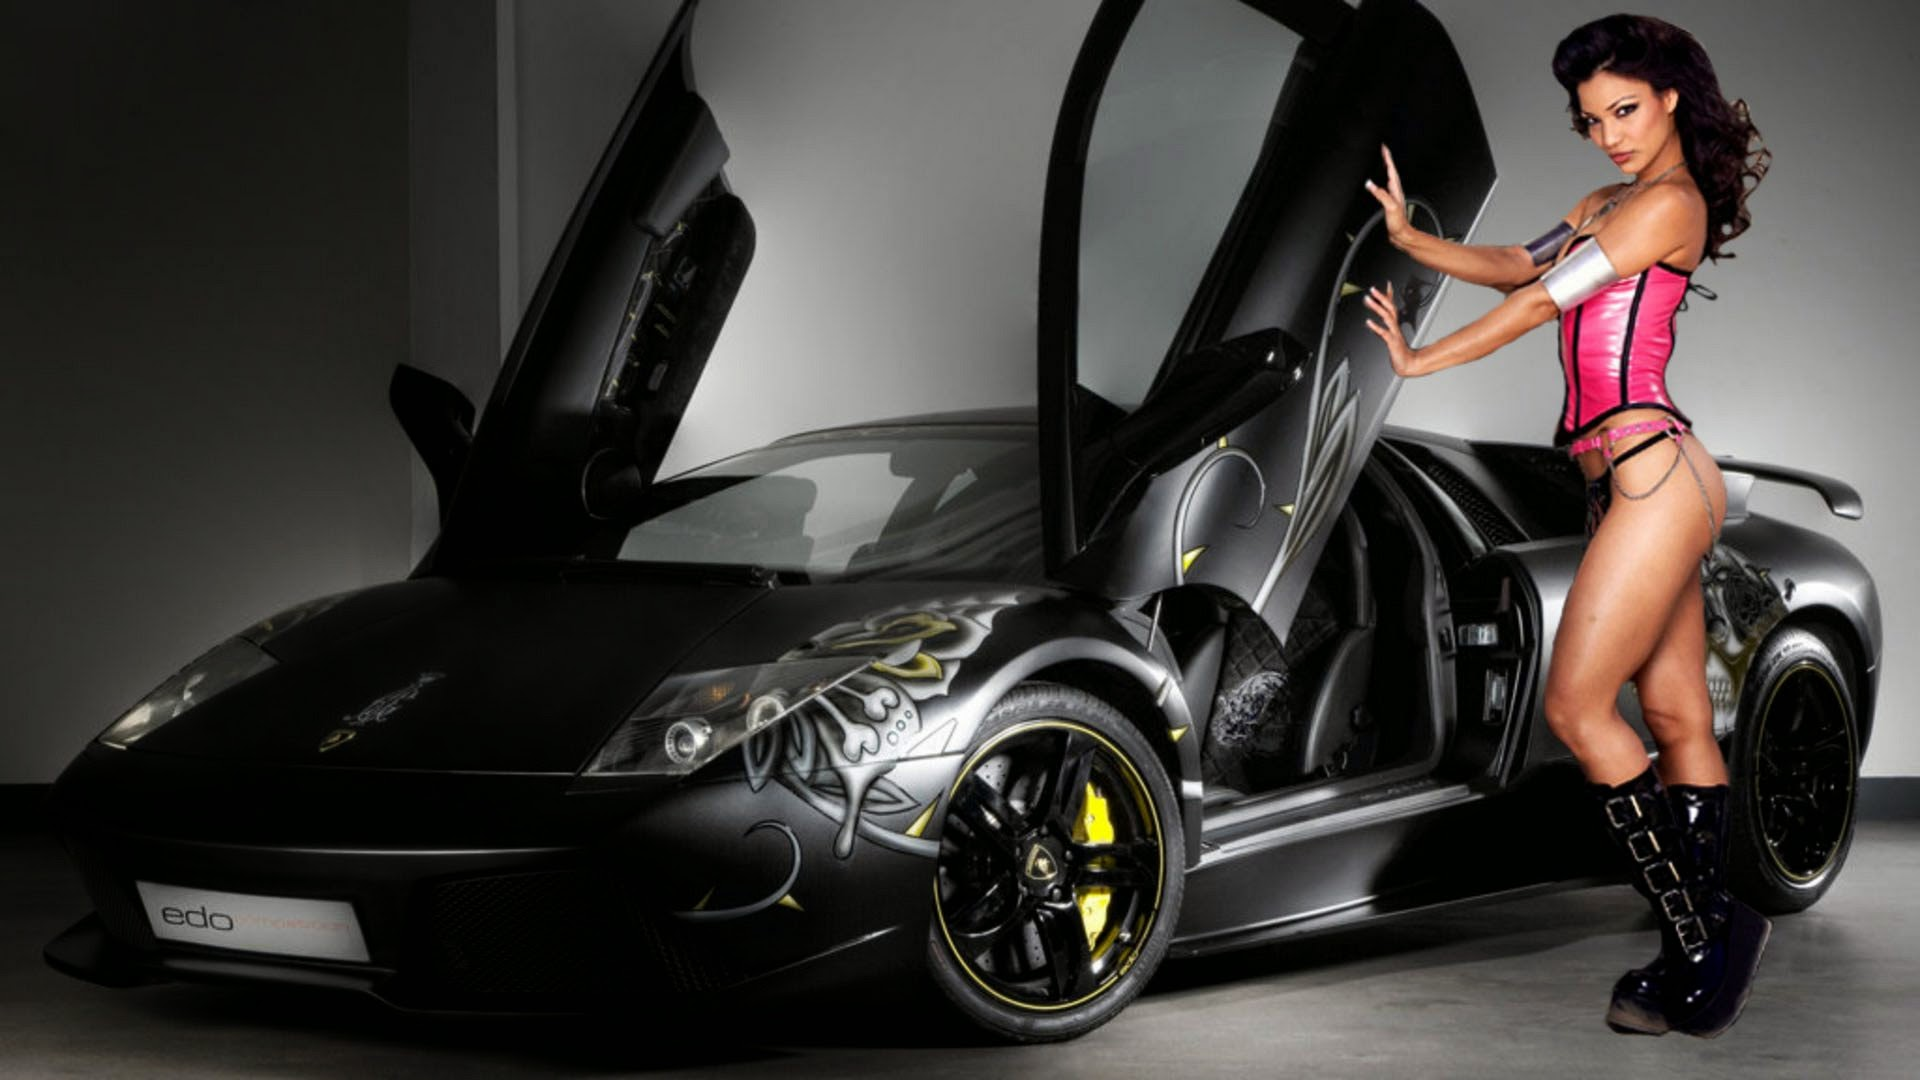 download EDo car With Model Girl